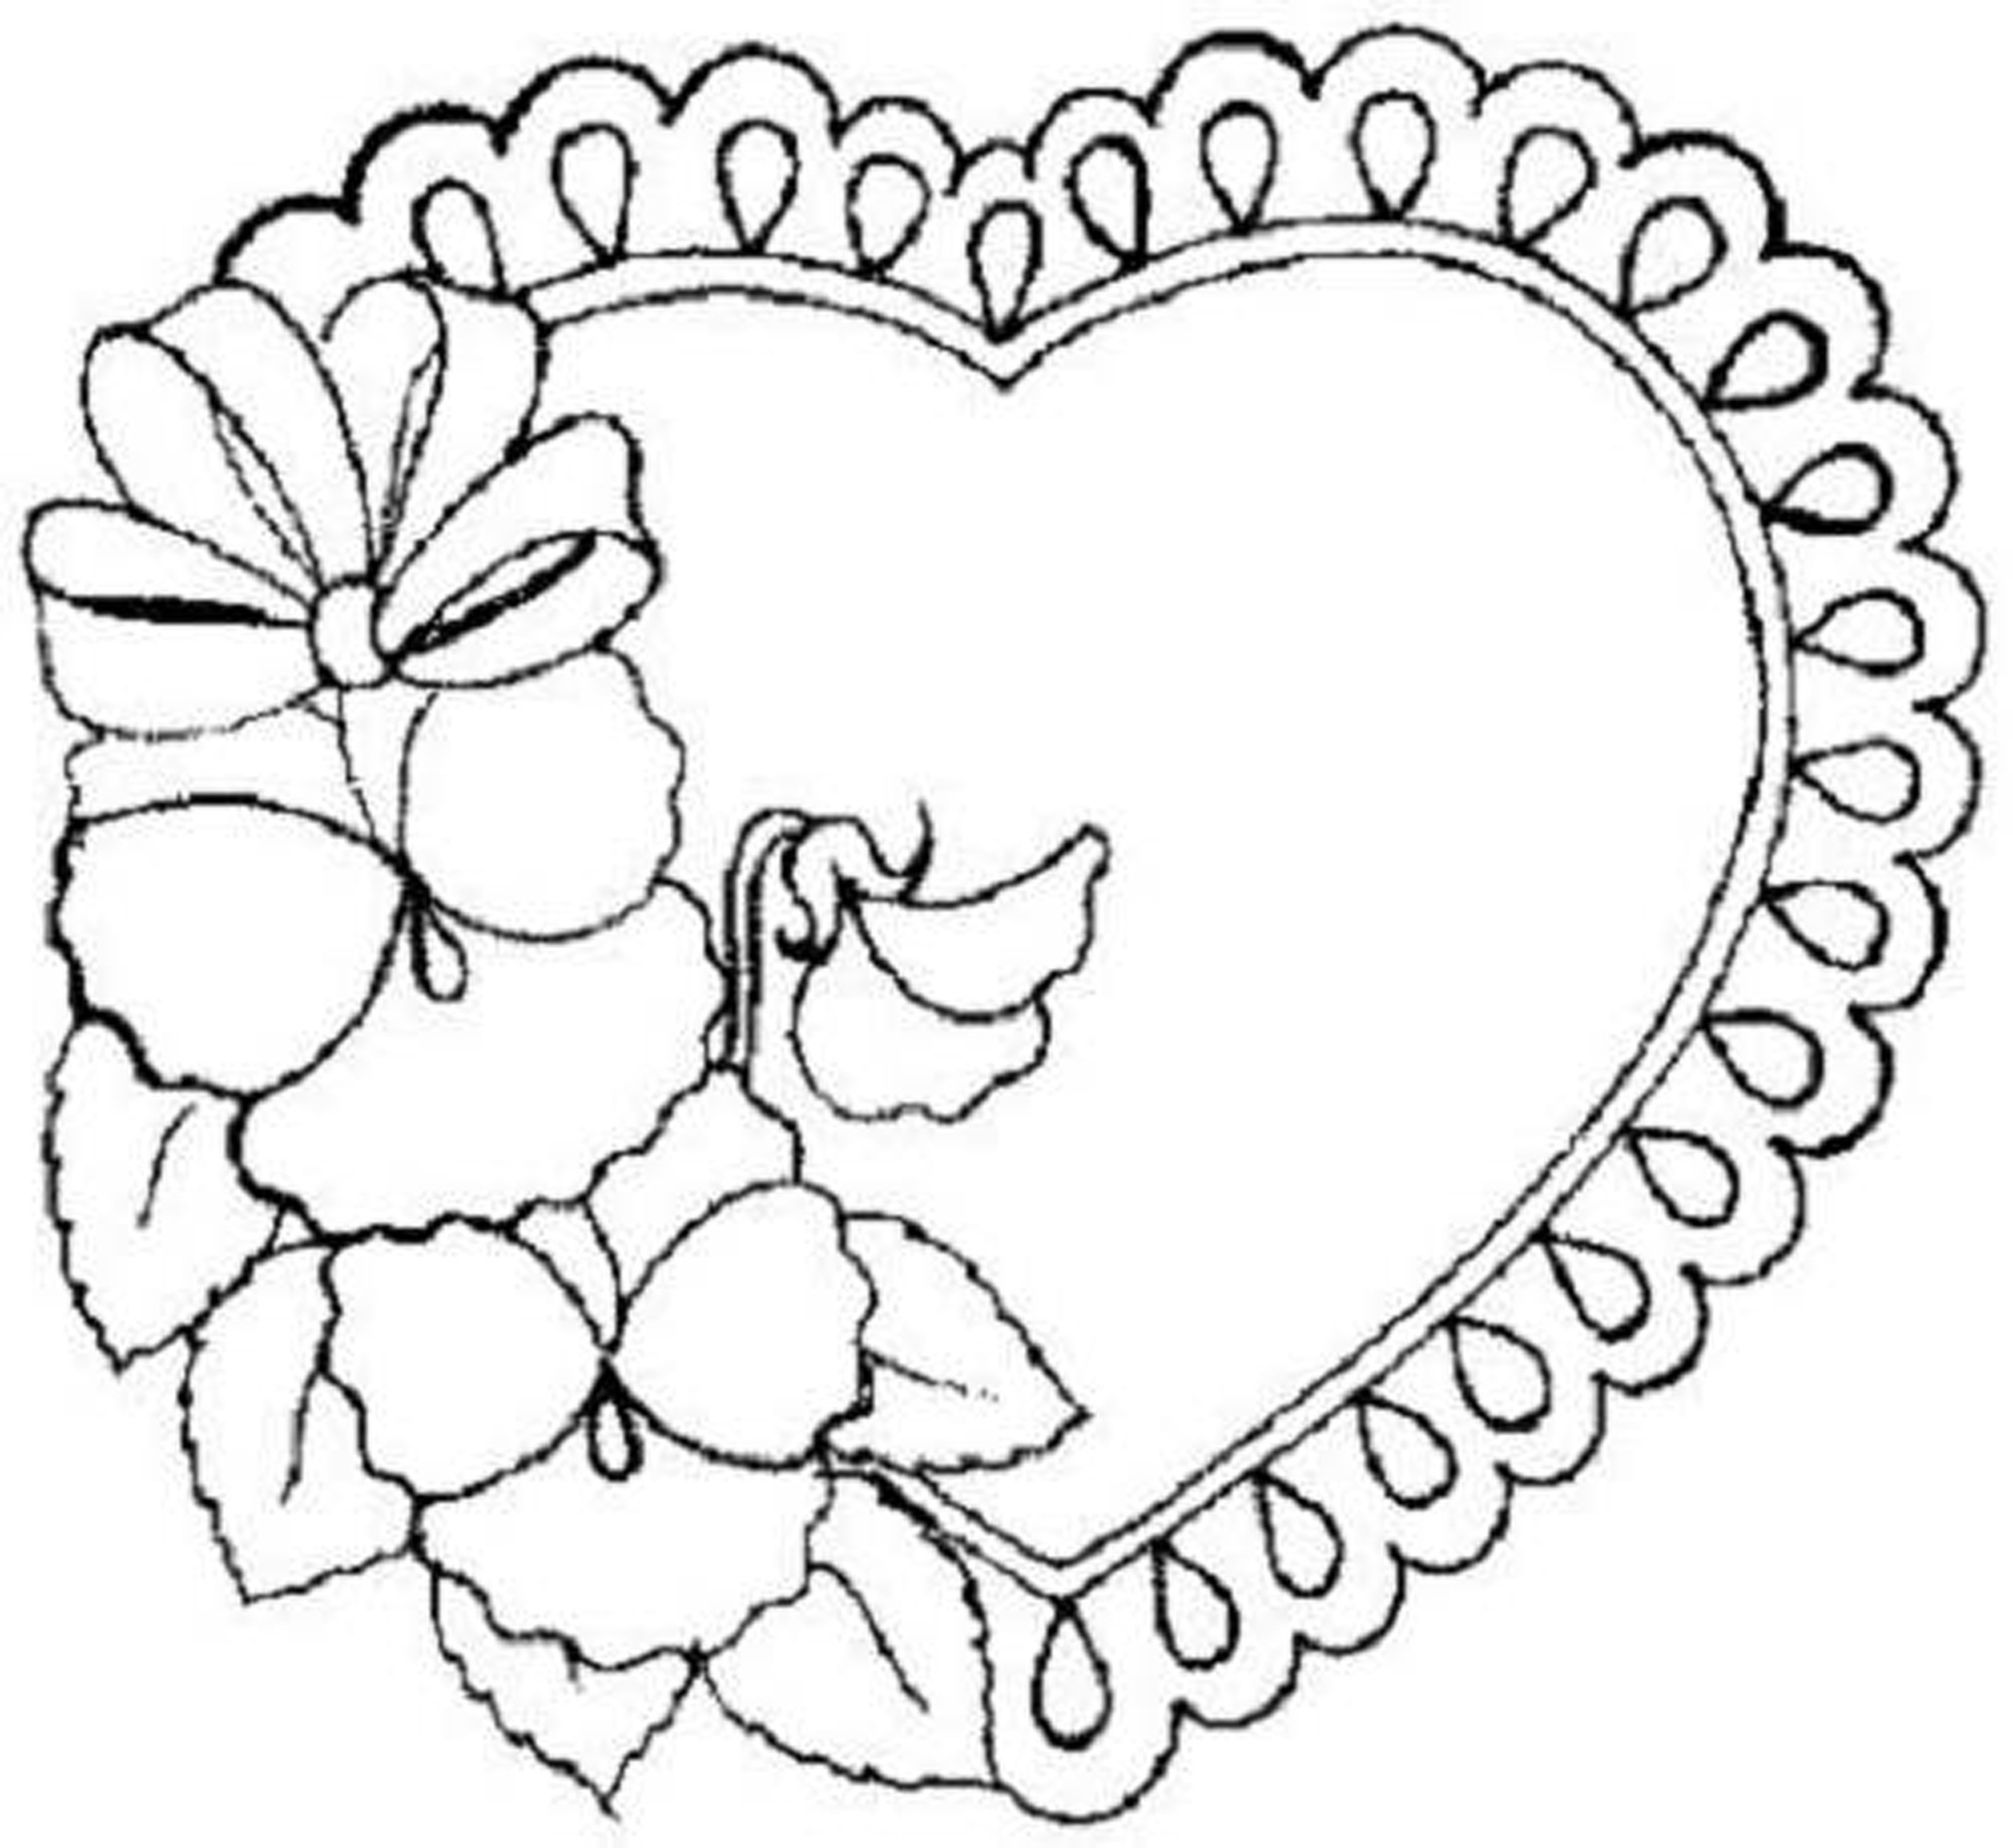 Free Coloring Pages Hearts Trendy Idea Coloring Pages Of Hearts And Flowers Fattkay Free Coloring